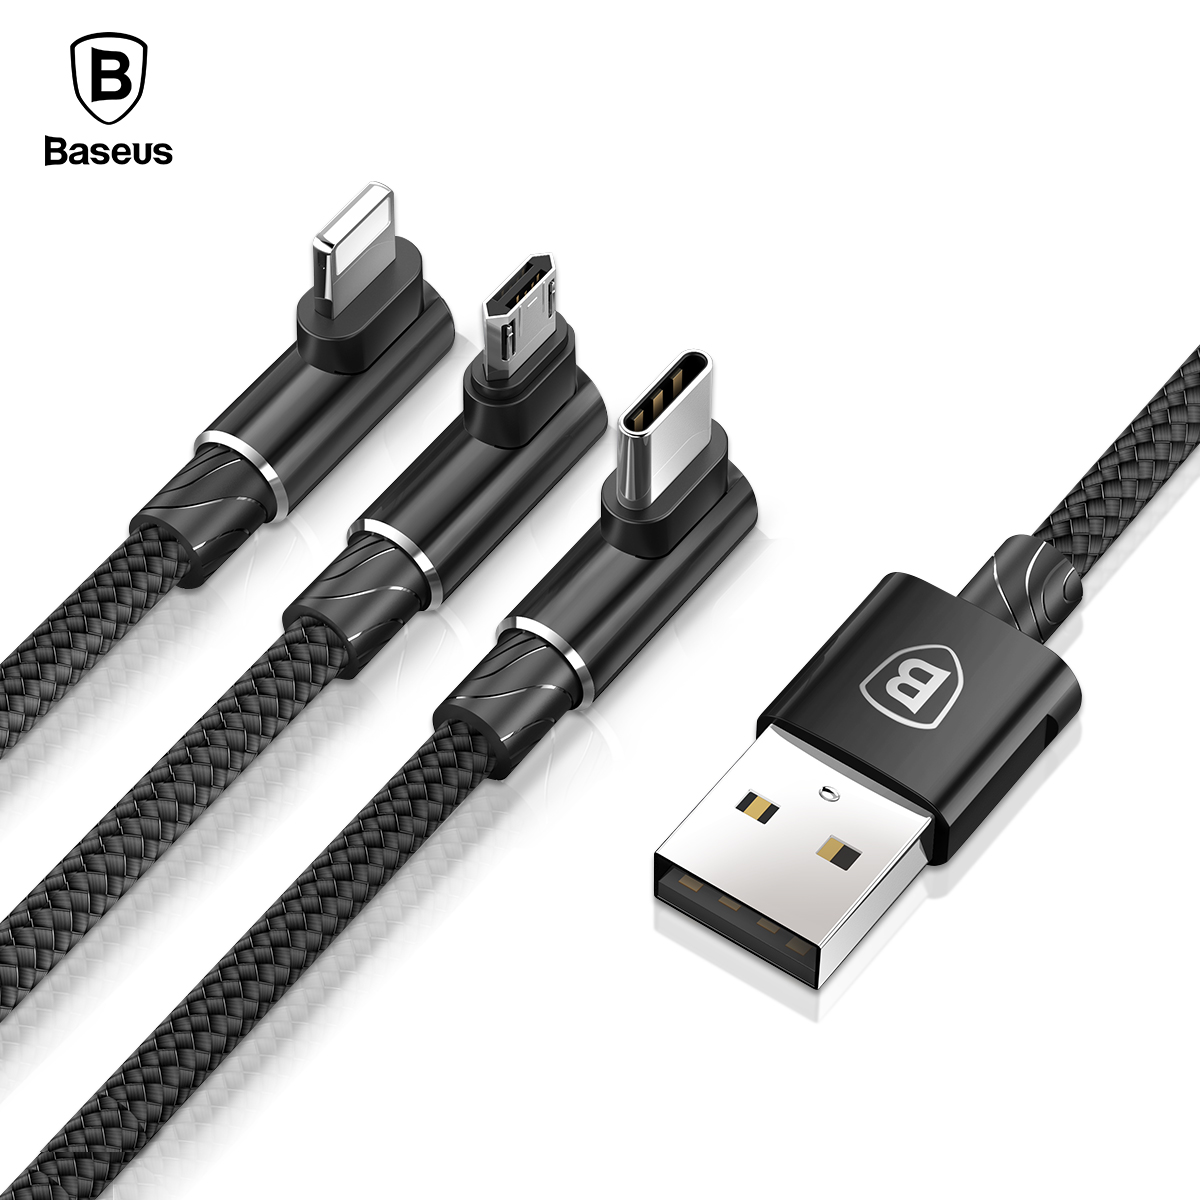 Baseus 90 Degree USB Cable For iPhone X 8 7 6 Charging Charger Wire Cord 3 in 1 Micro USB Cable Type-c USB Type C Cable Adapter